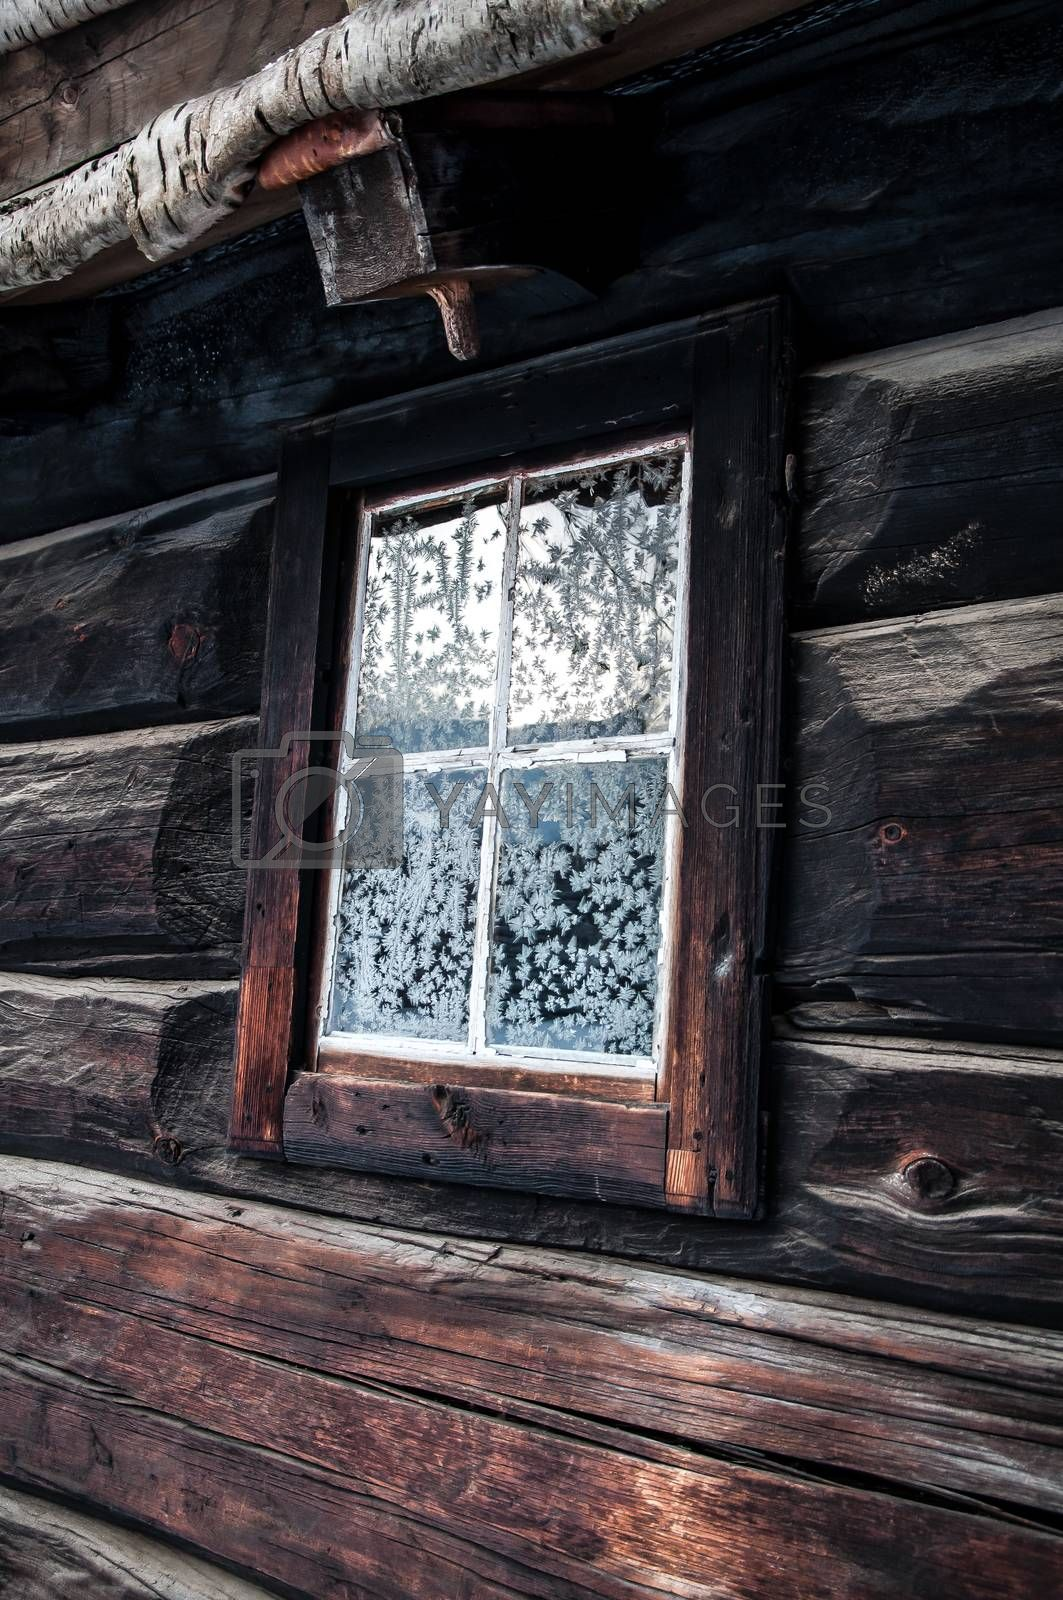 An old house in the winter with snowcrystals on the window.